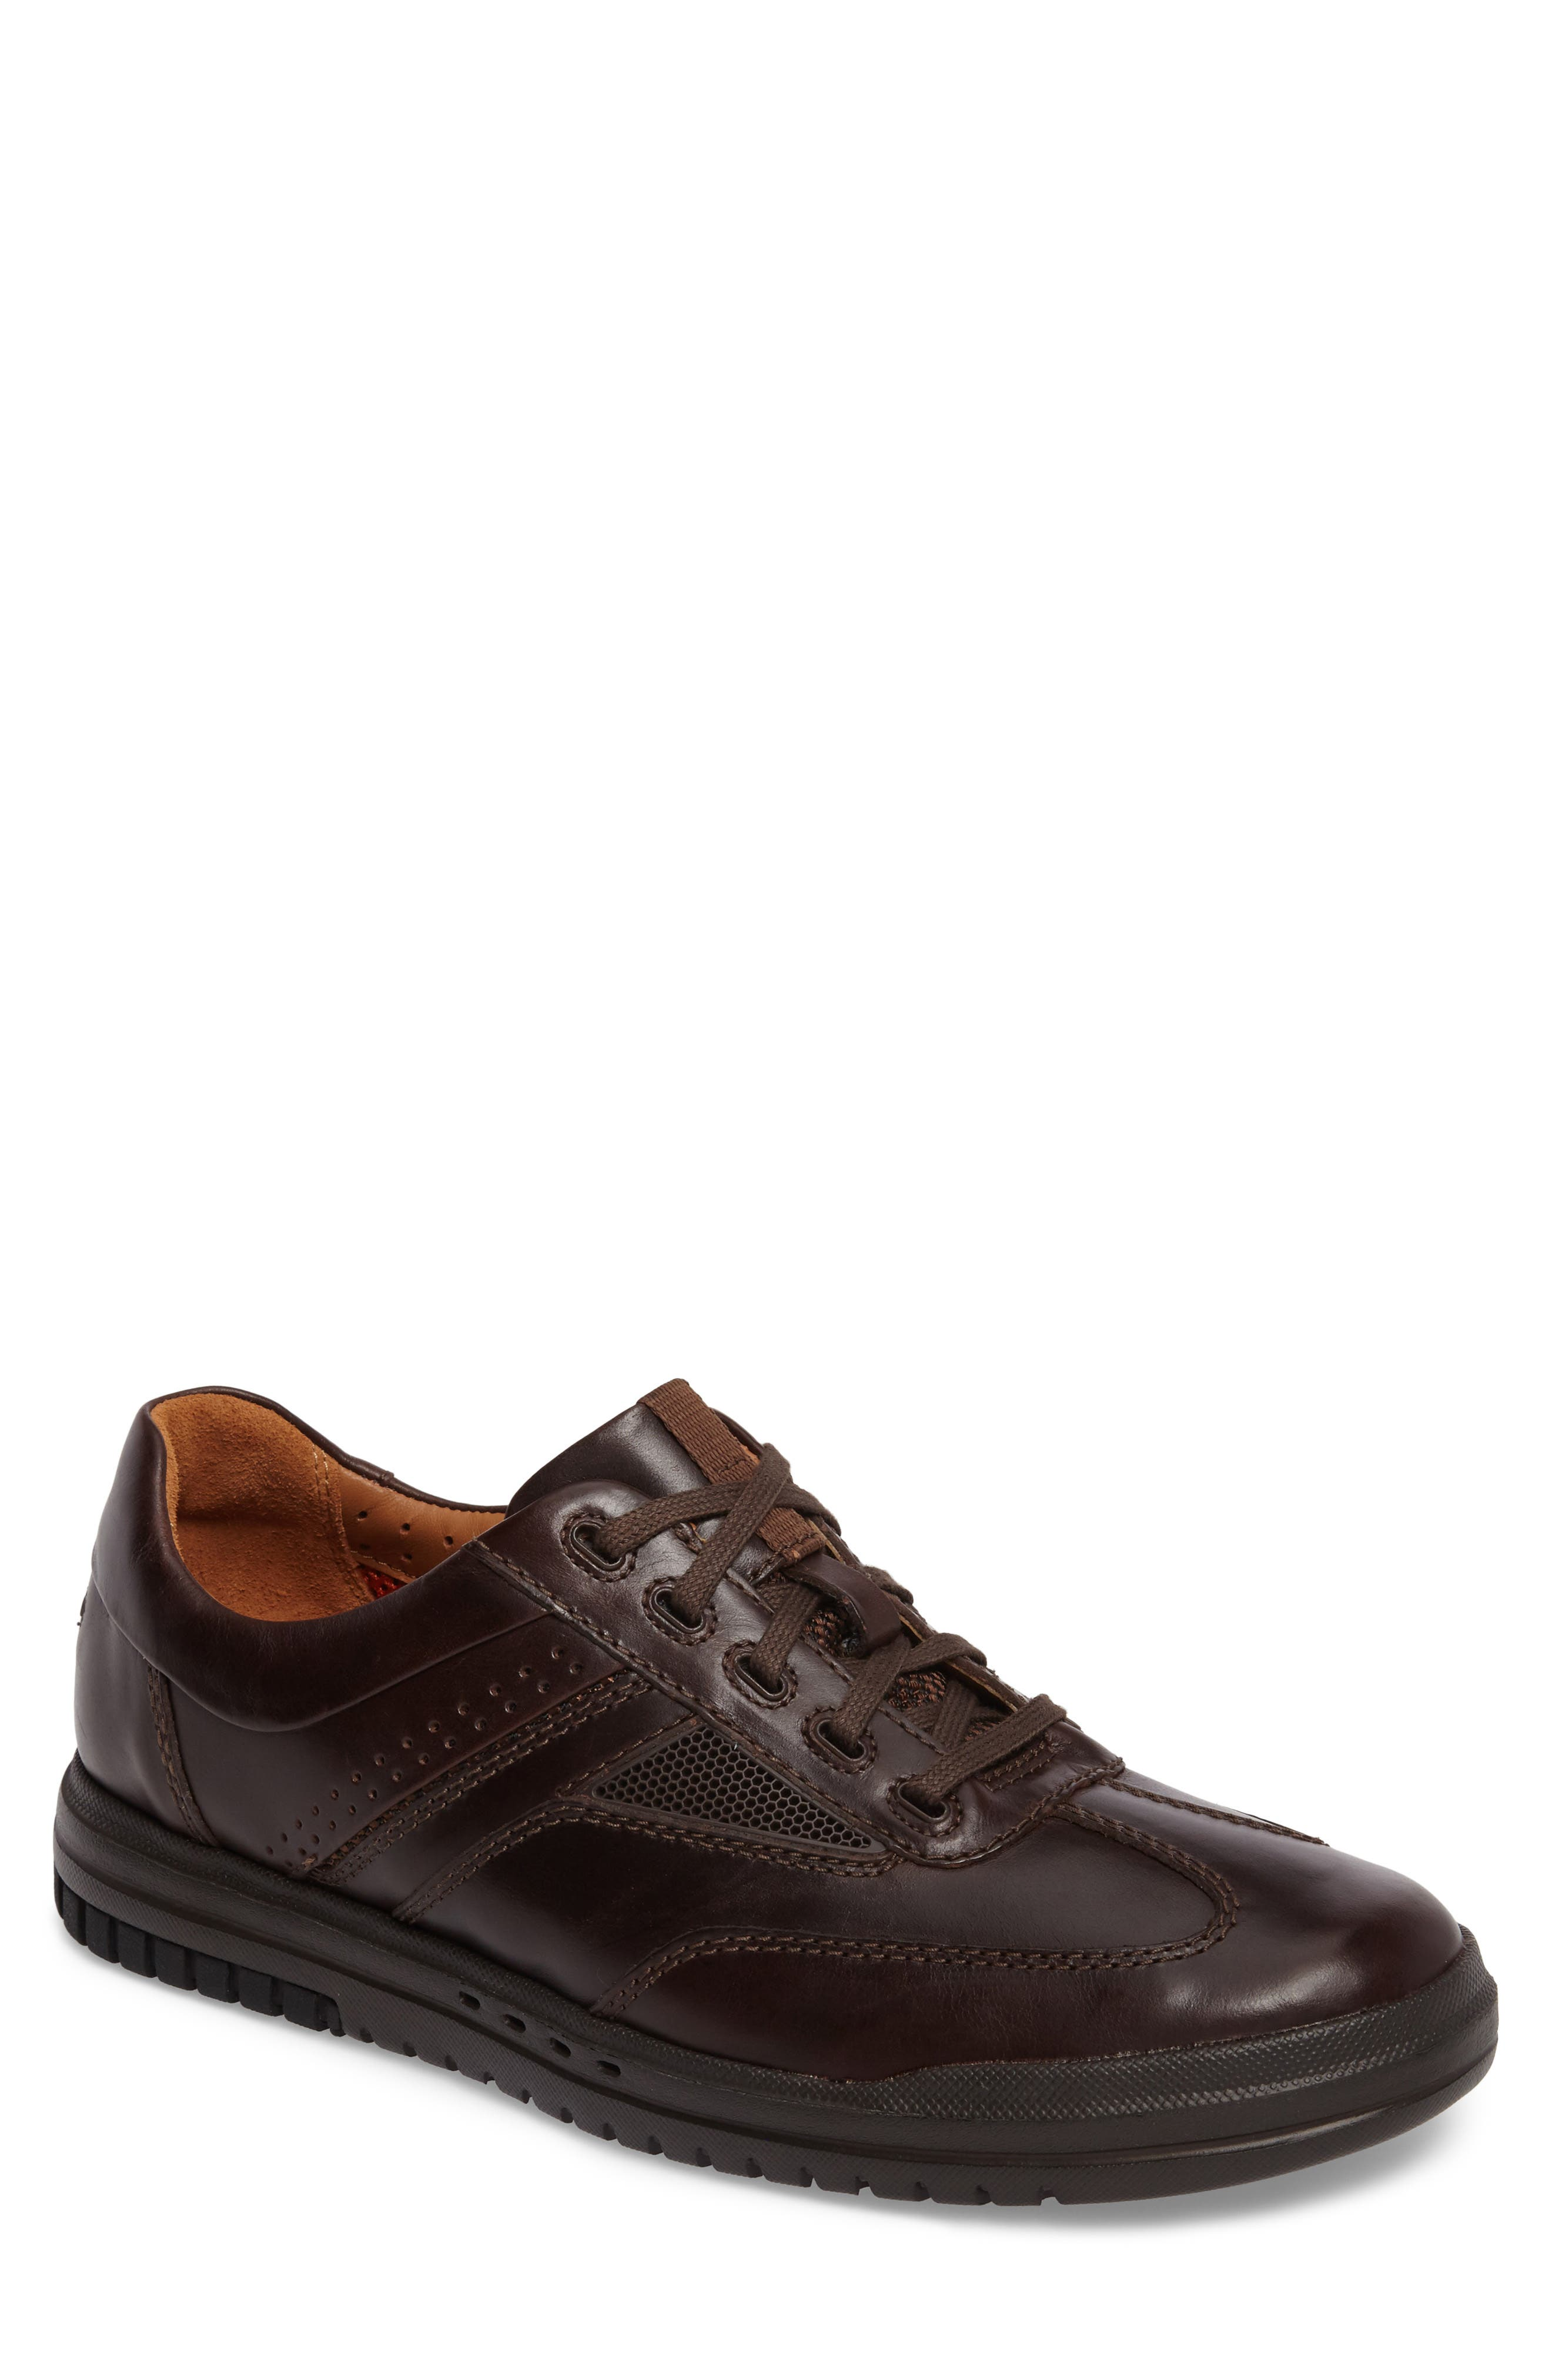 Un.Rhombus Fly Sneaker,                             Main thumbnail 1, color,                             Brown Leather